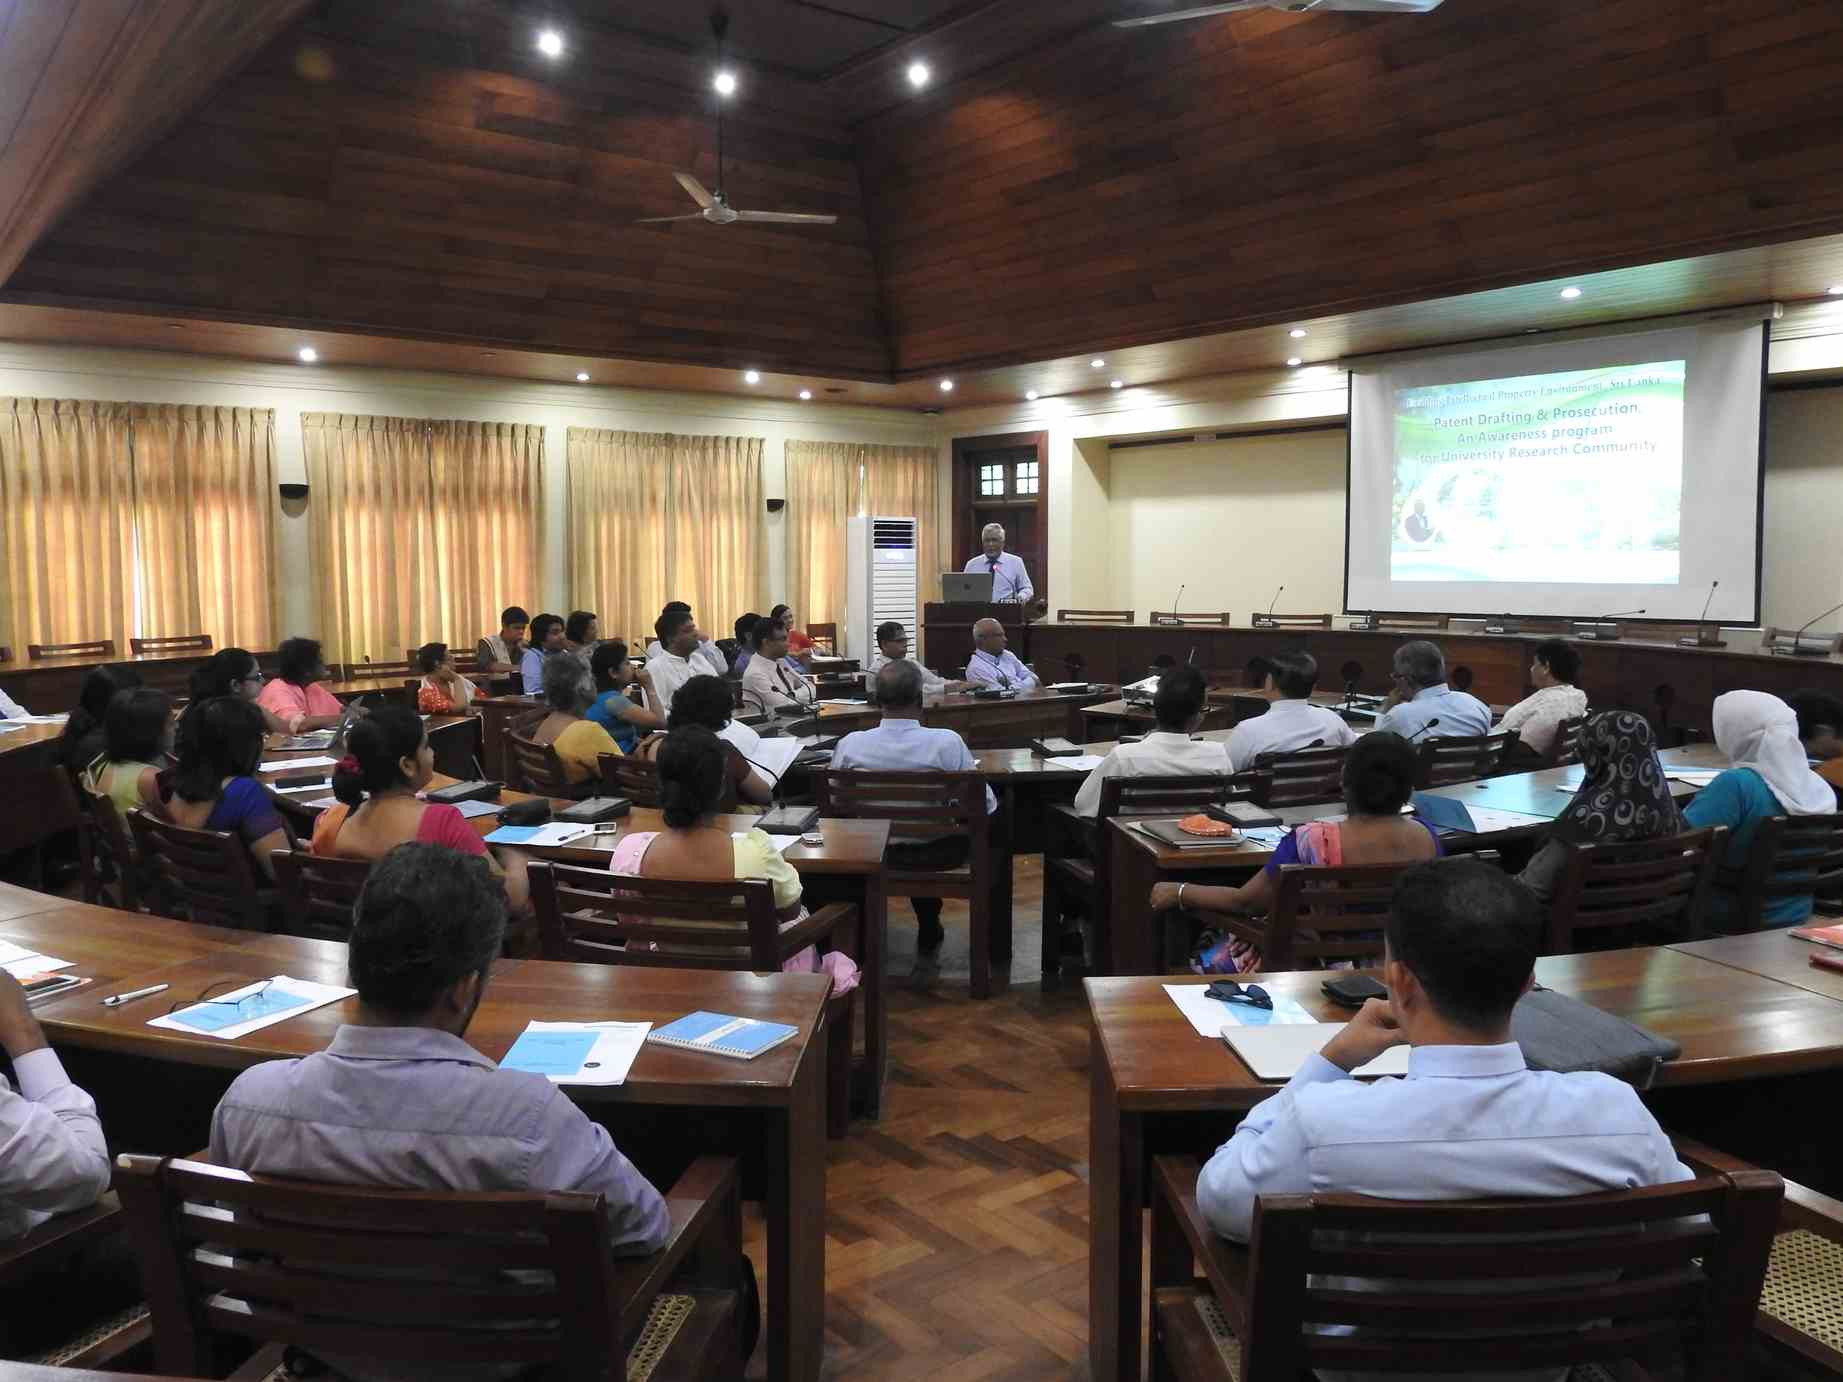 A workshop on Patent Drafting & Prosecution – An Awareness Program for University Research Community